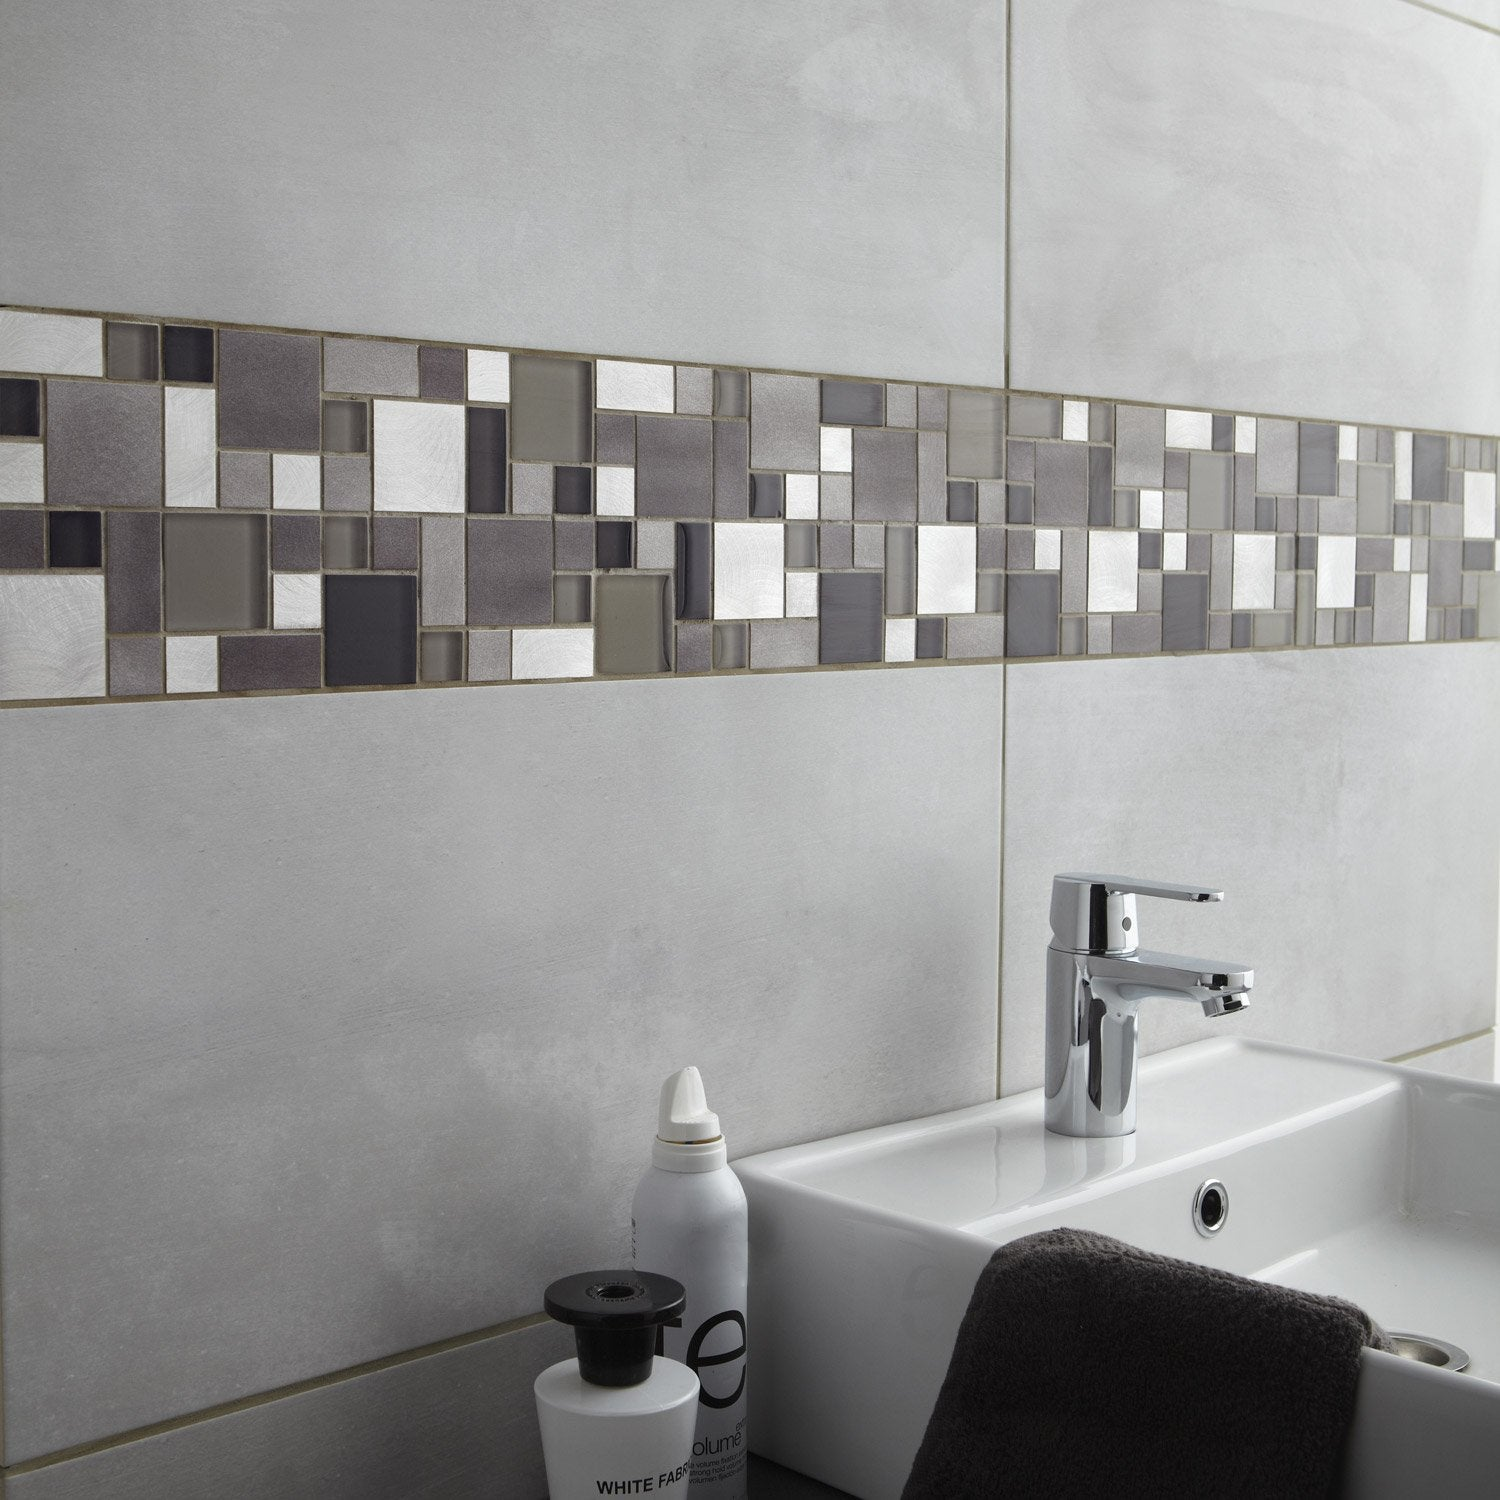 Fa ence mur gris clair denver x cm leroy merlin for Carreaux gris salle de bain